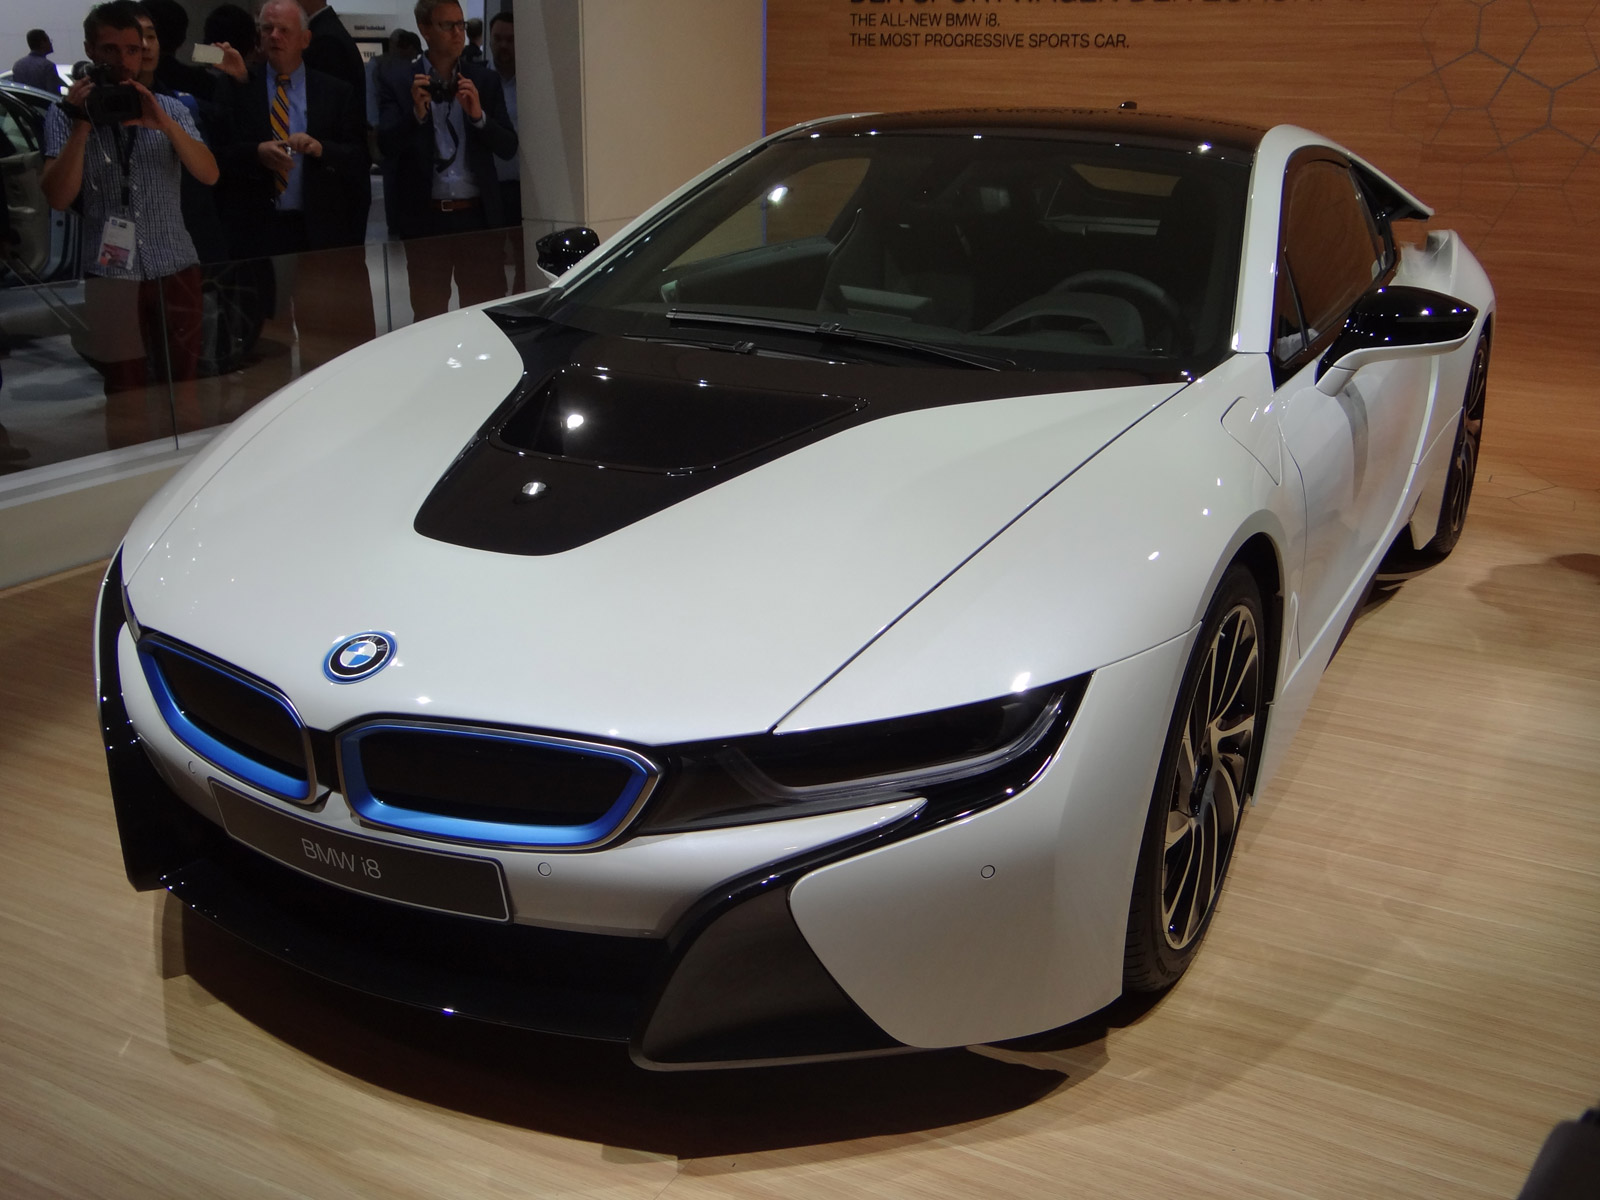 2015 BMW I8 Live Photo Gallery 2013 Frankfurt Auto Show